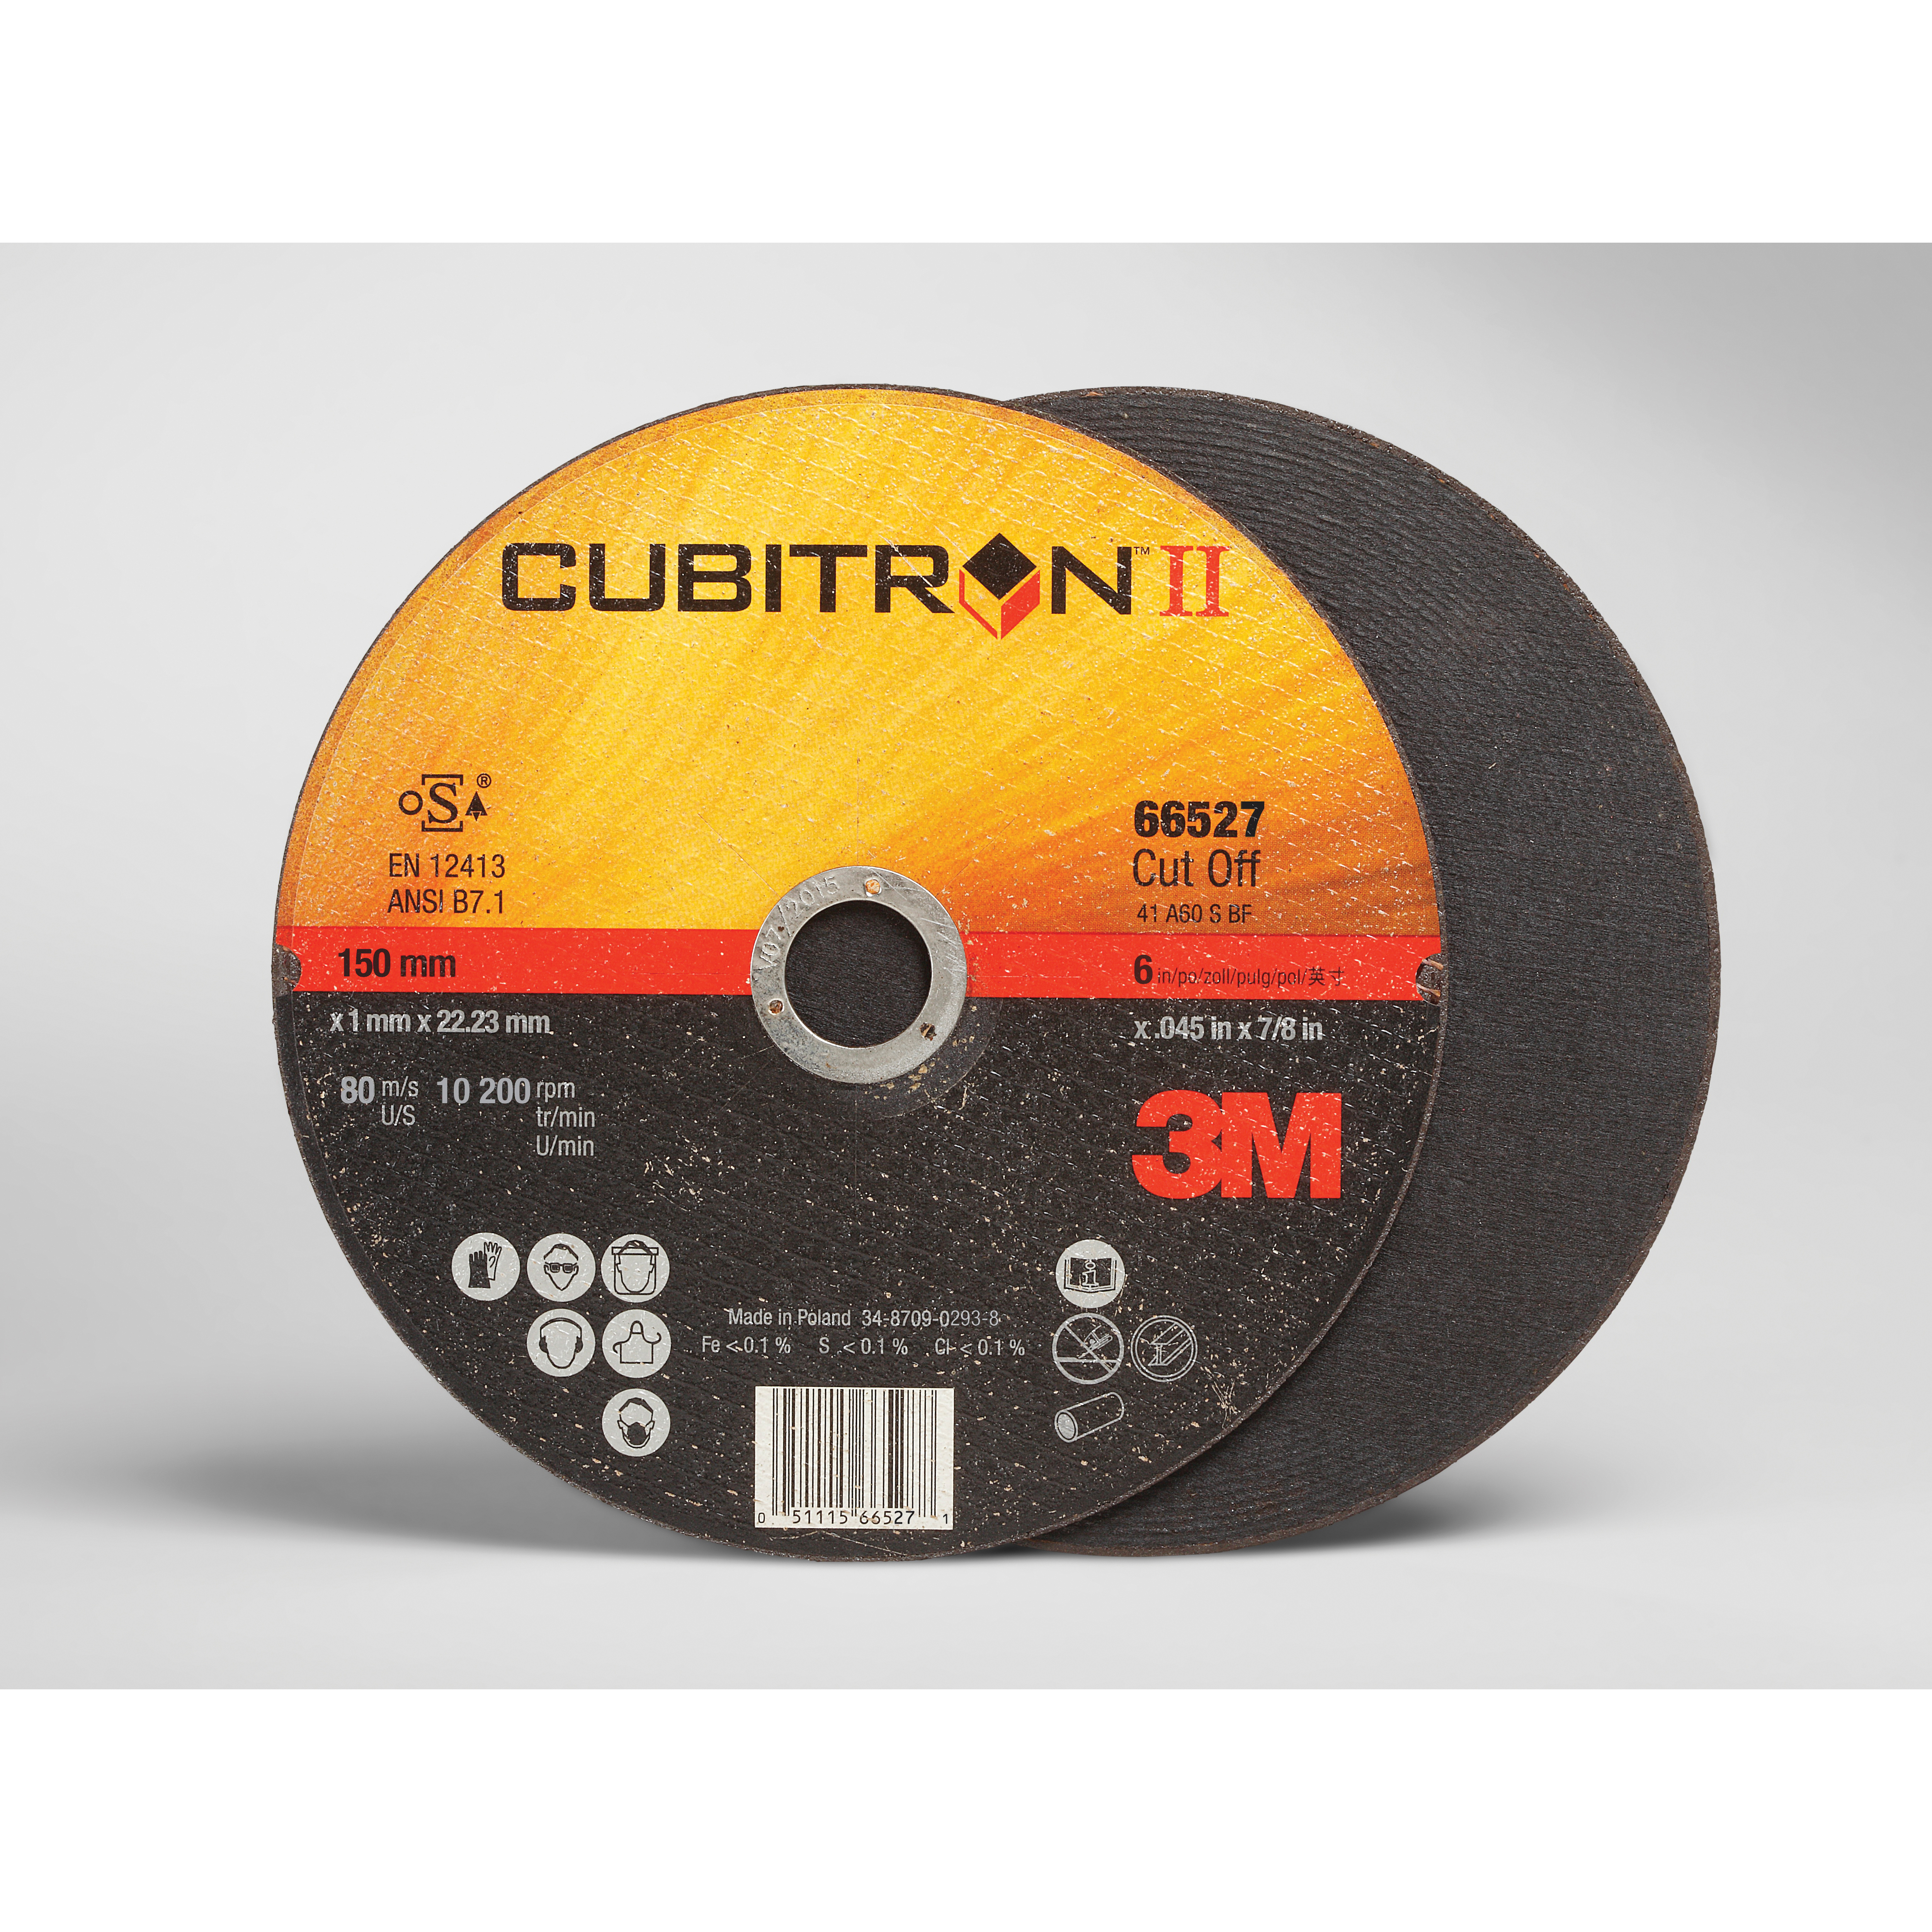 Cubitron™ II 051115-19657 Narrow Coated Abrasive Belt, 2 in W x 132 in L, 36 Grit, Ceramic Abrasive, Polyester Backing